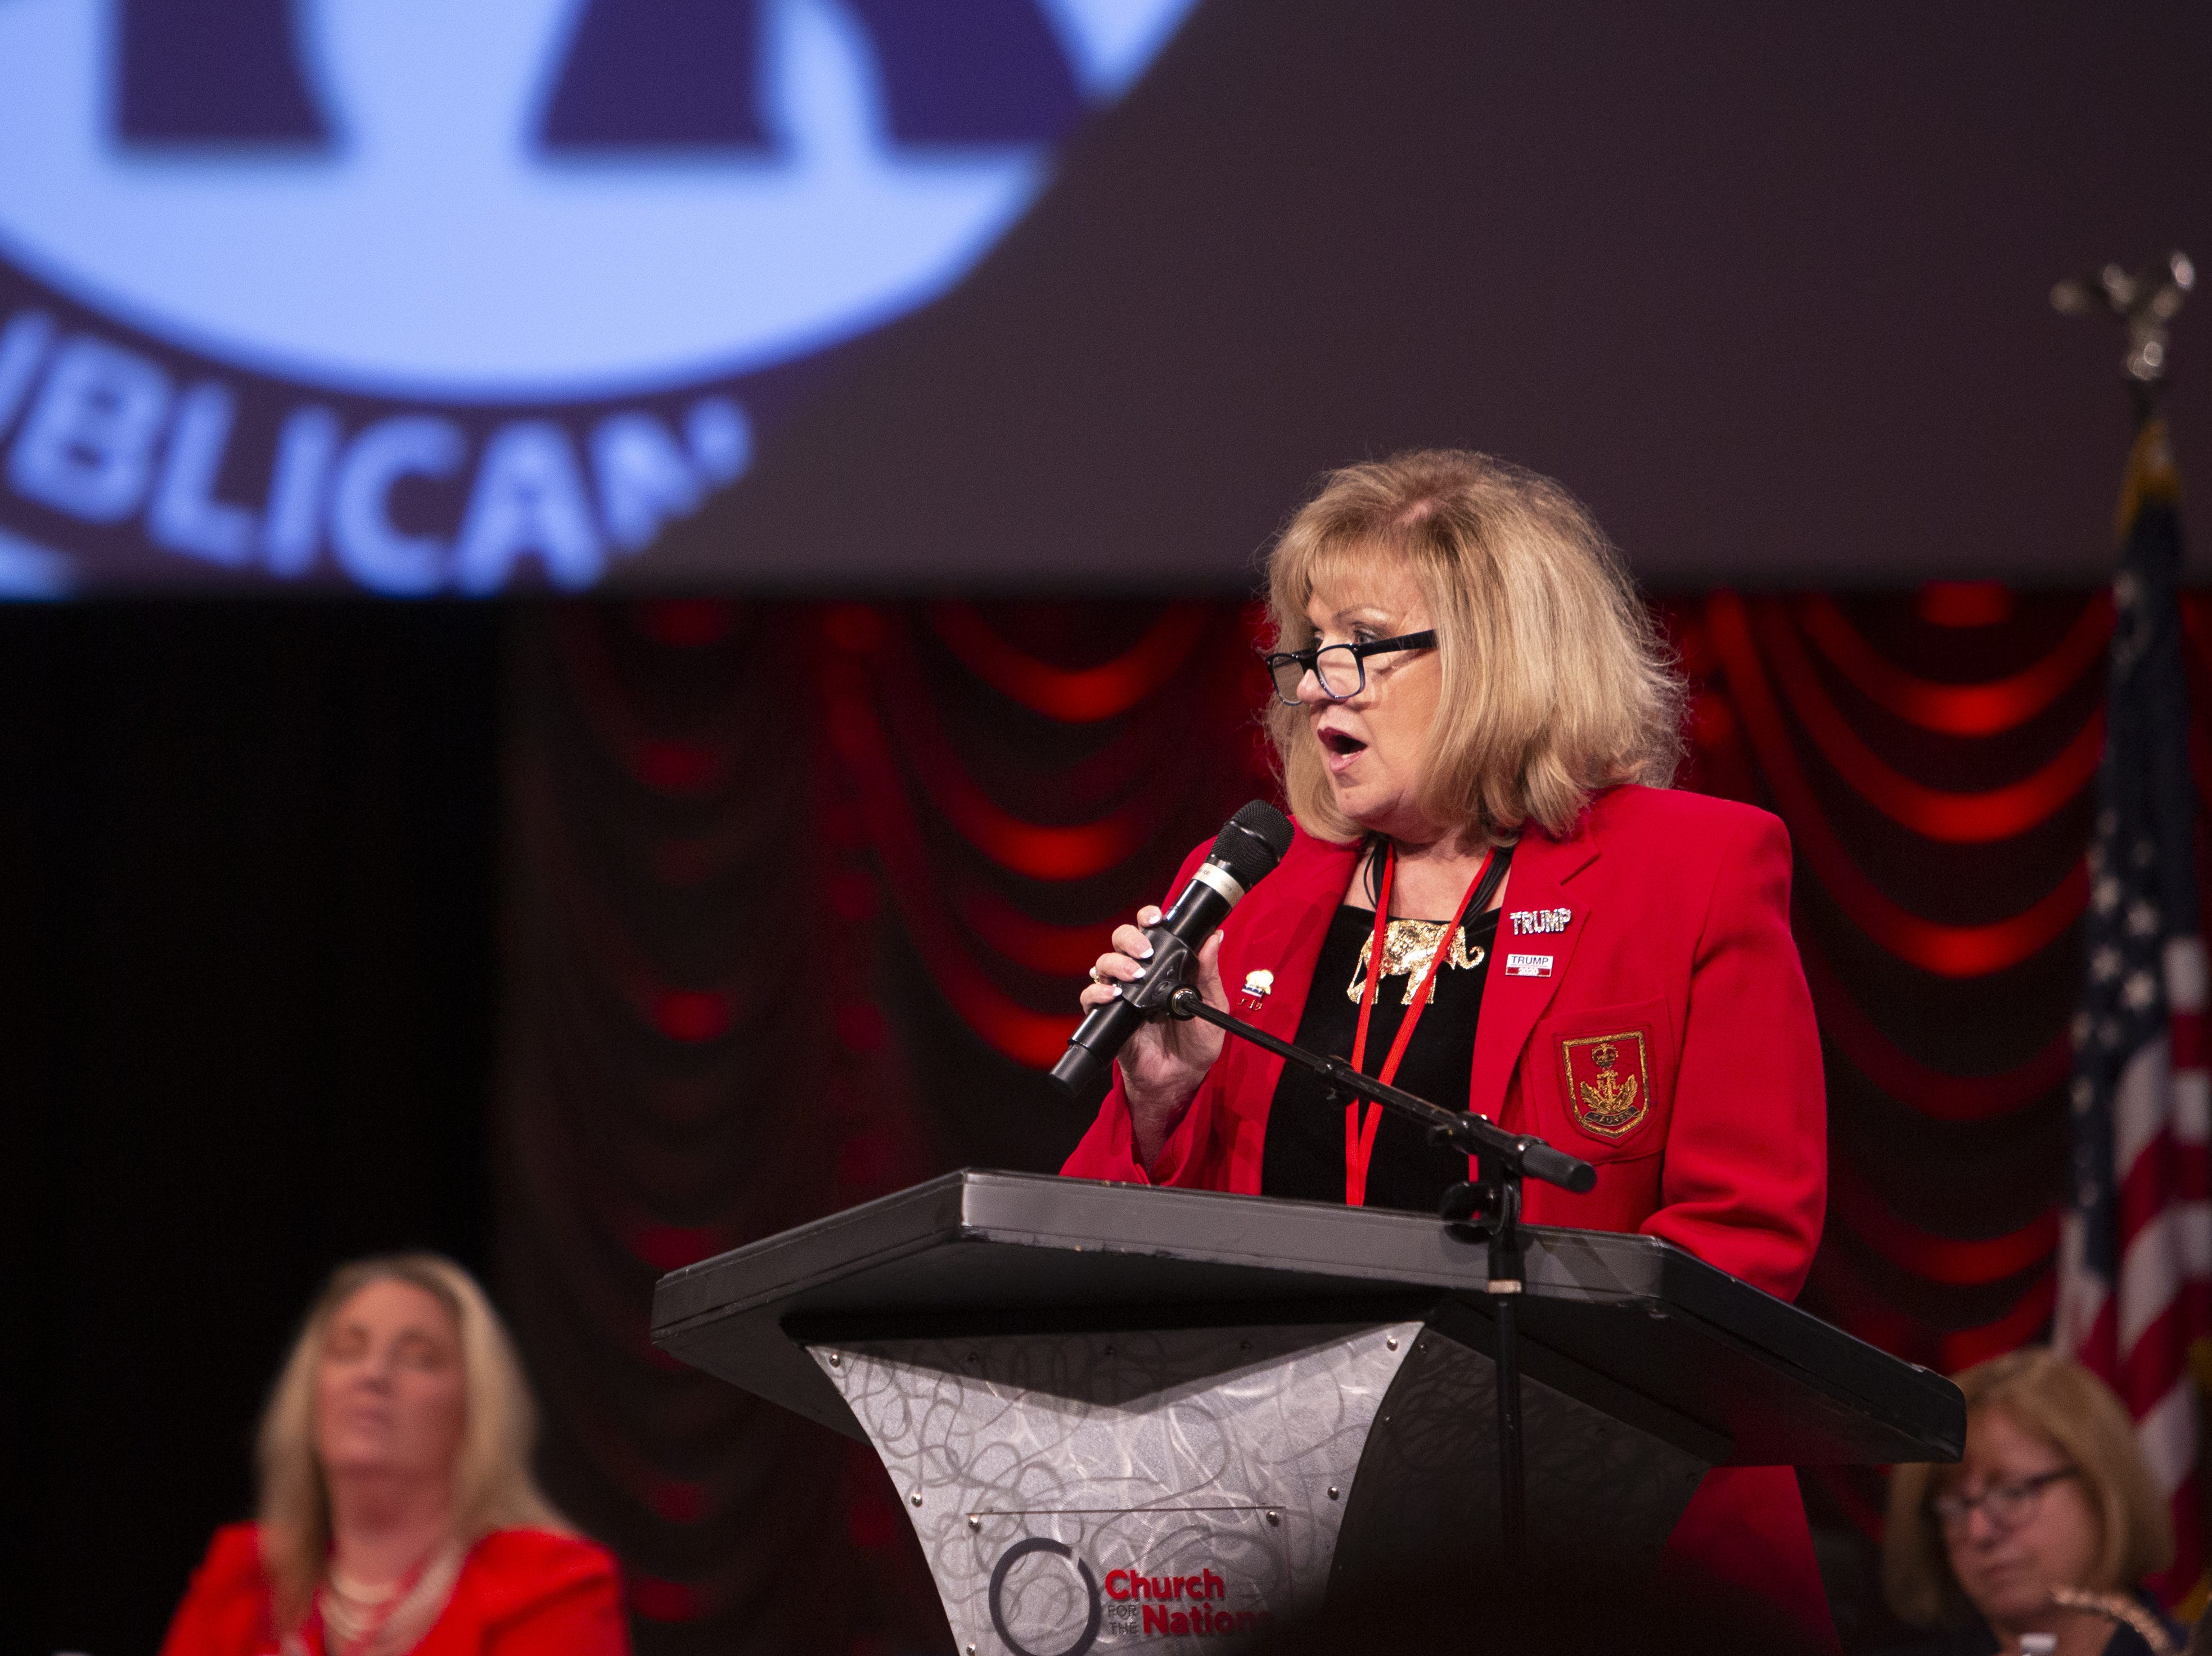 Lori Klein Corbin speaks during the Statutory Meeting of the State Committee of the Arizona Republican Party at Church for the Nations on Saturday, Jan. 26, 2019.